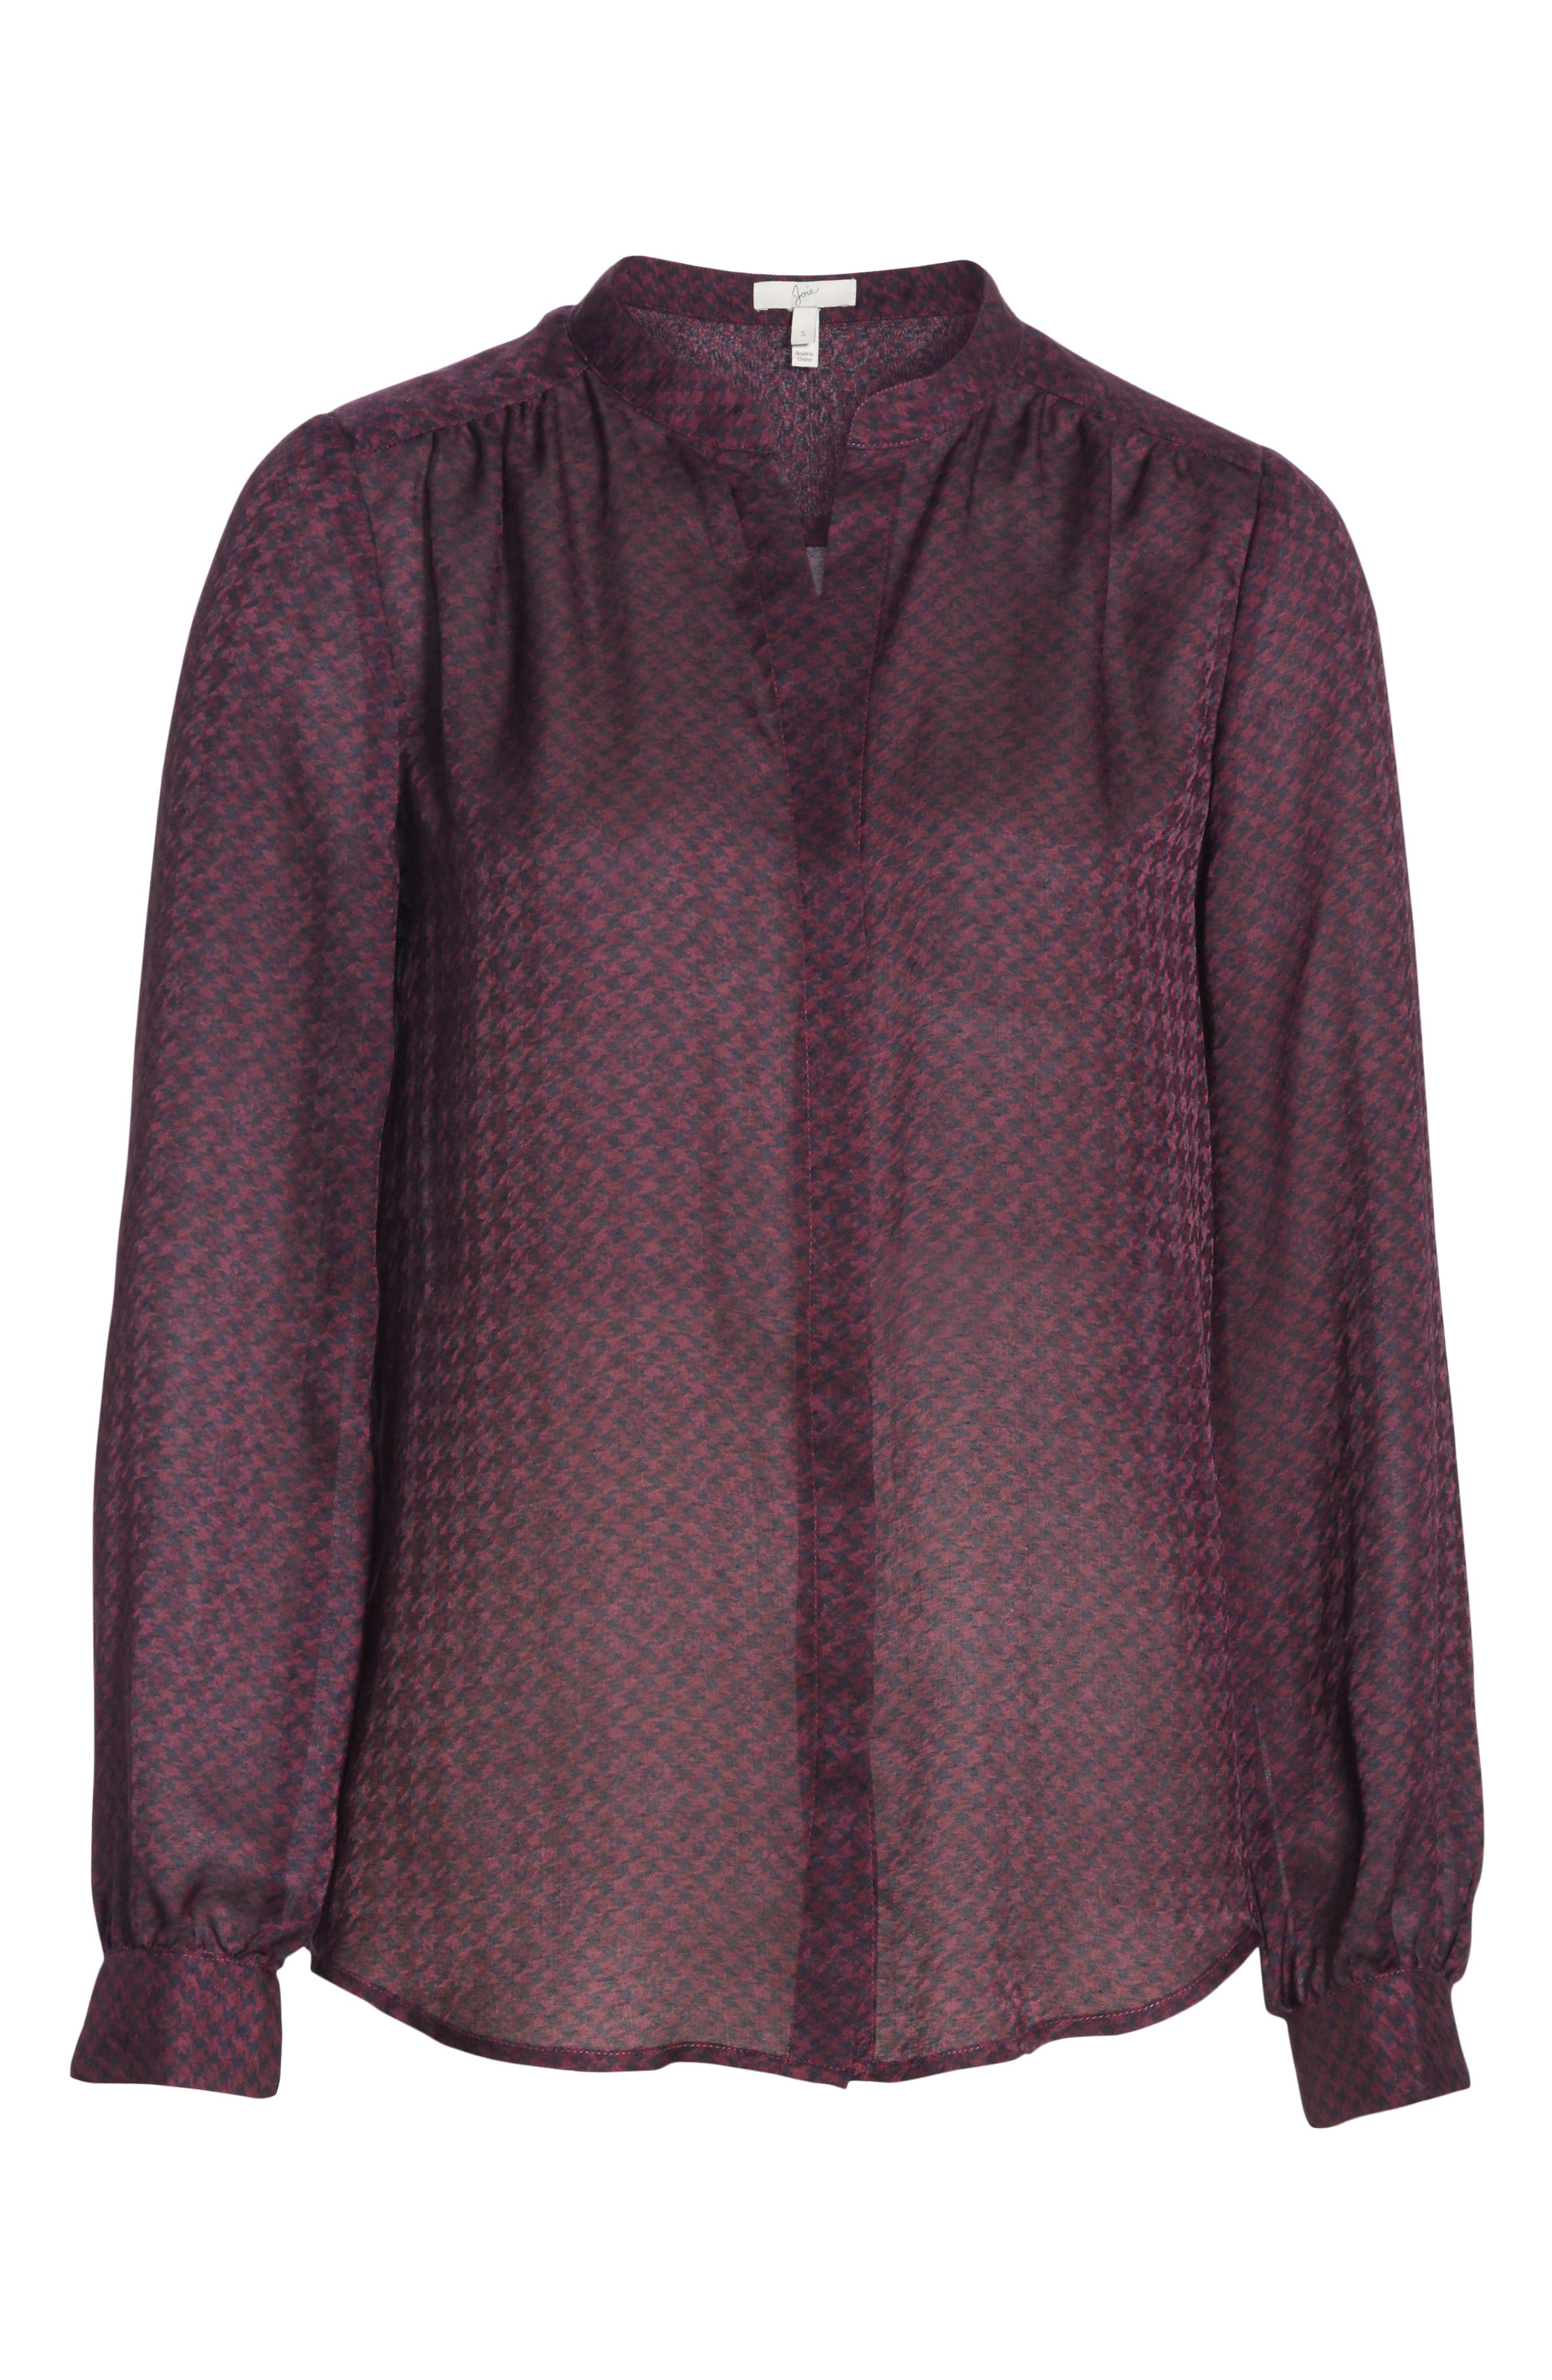 JOIE, Mintee Houndstooth Check Blouse, Alternate thumbnail 6, color, 501